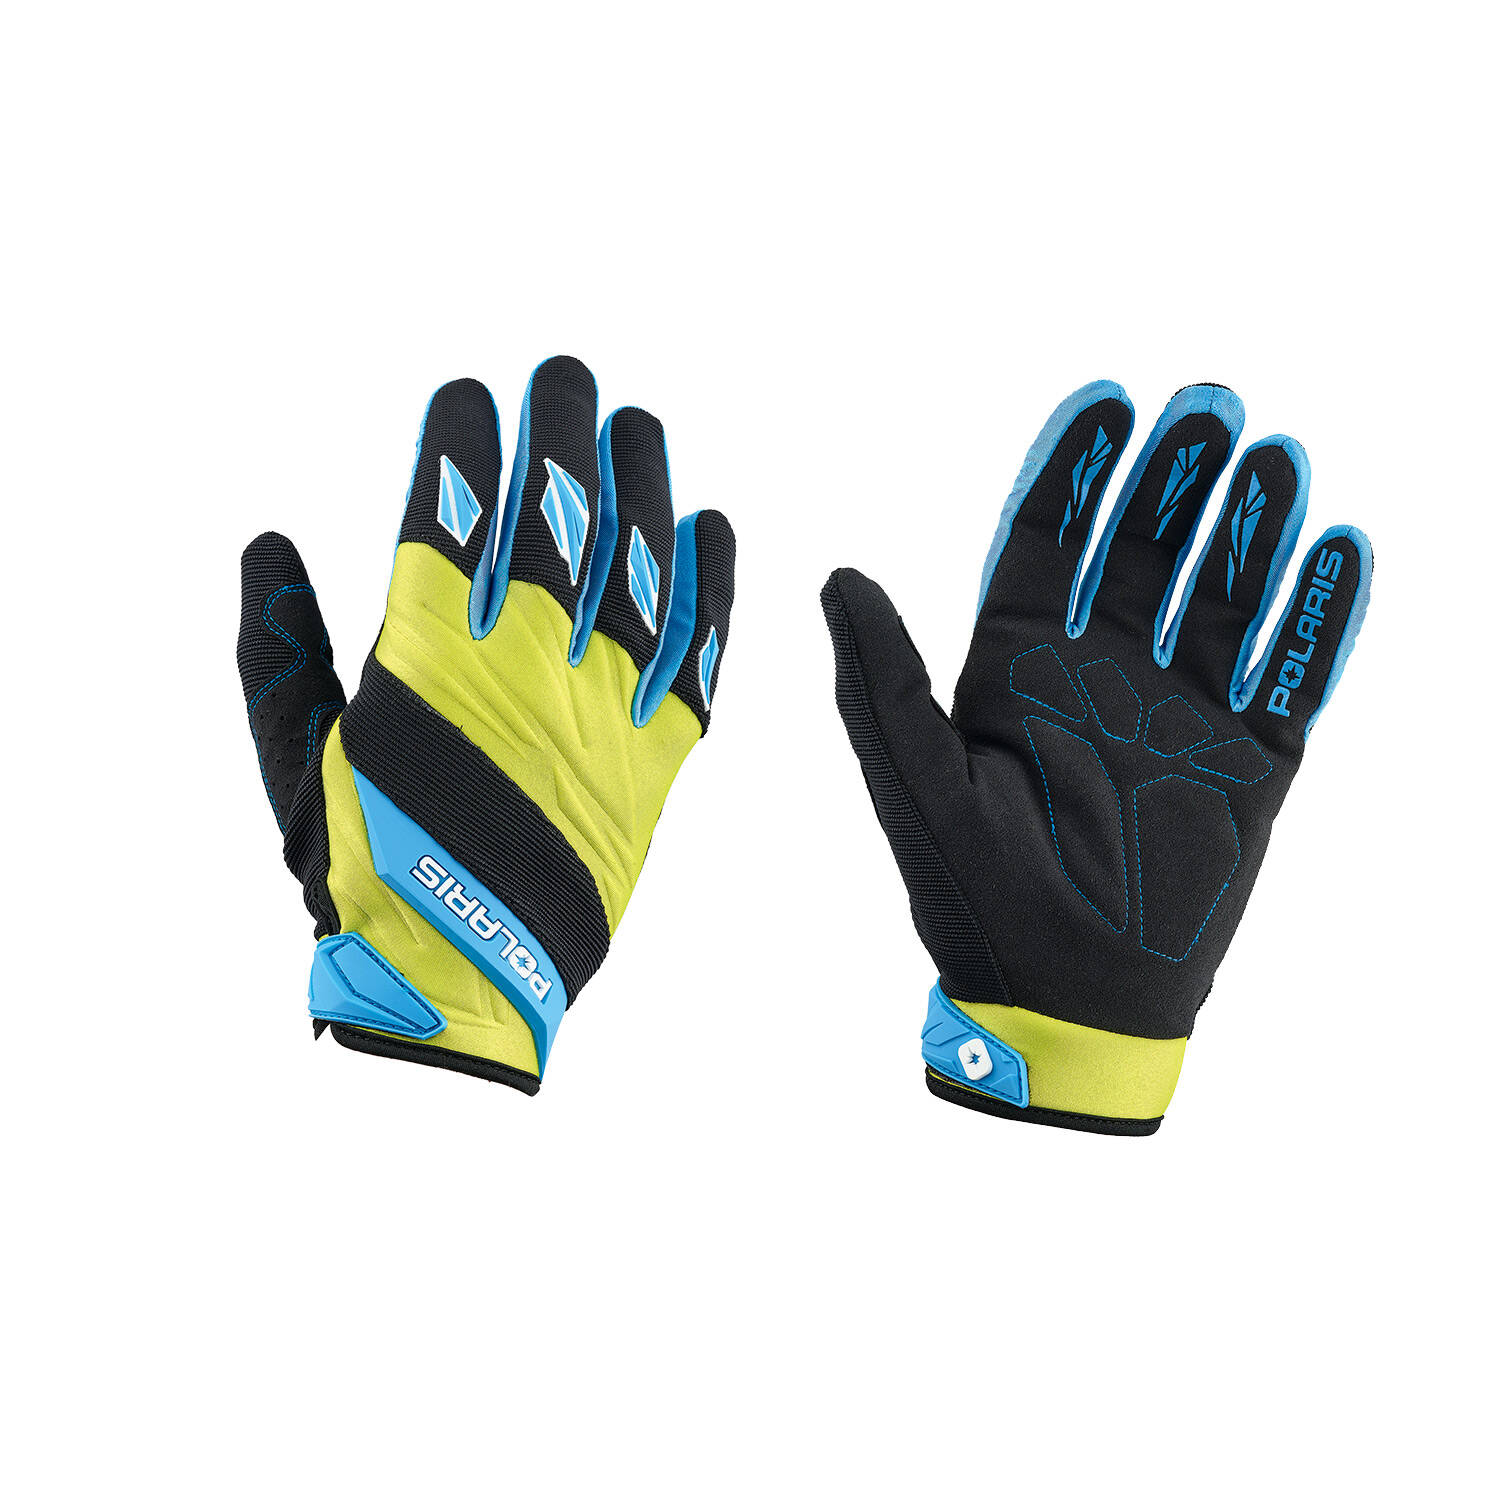 Off-Road Riding Glove - Blue/Lime